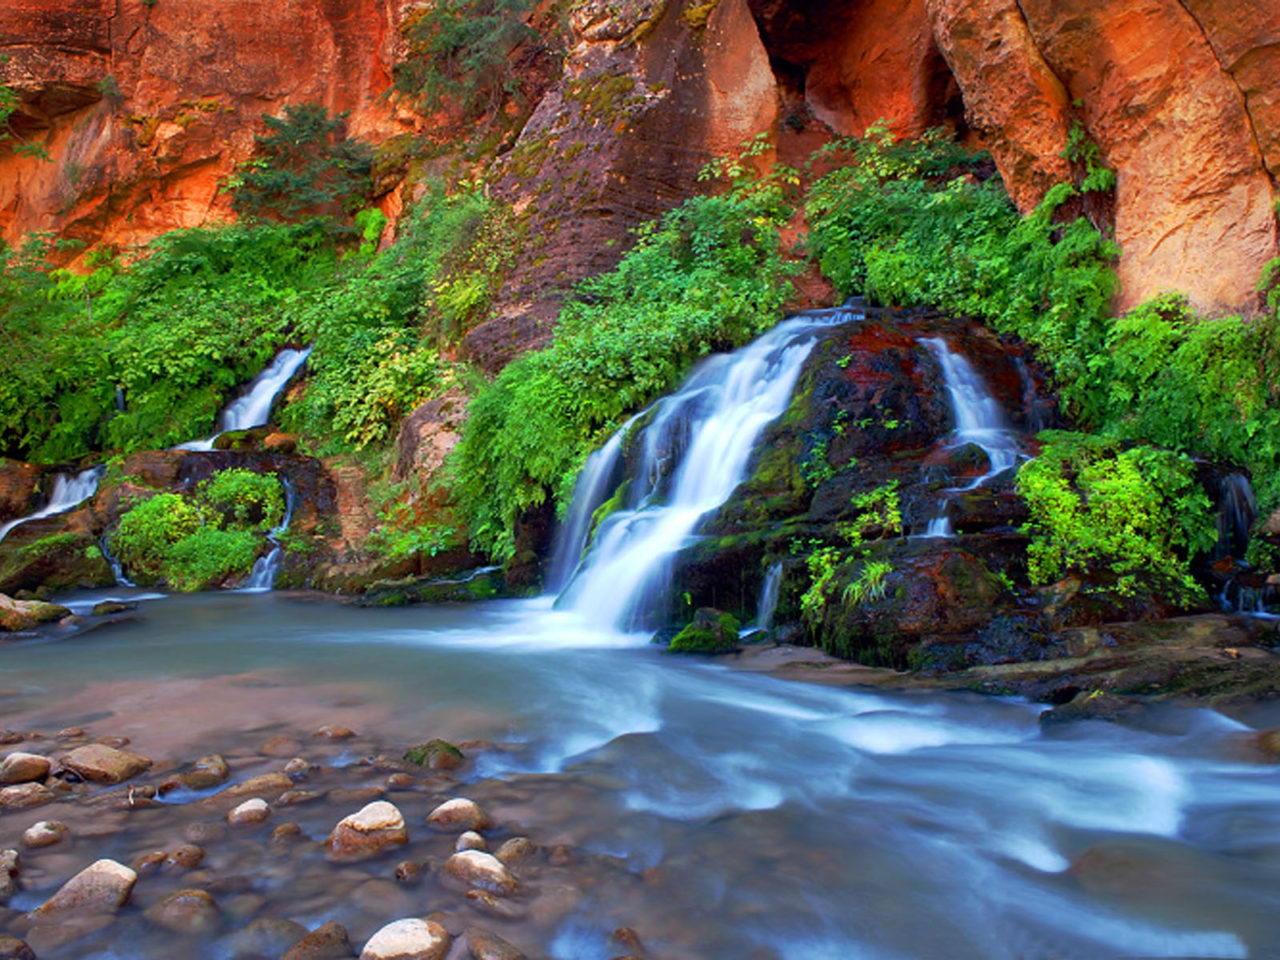 Landscape Wallpaper Iphone X The Narrows Zion National Park Arizona United States